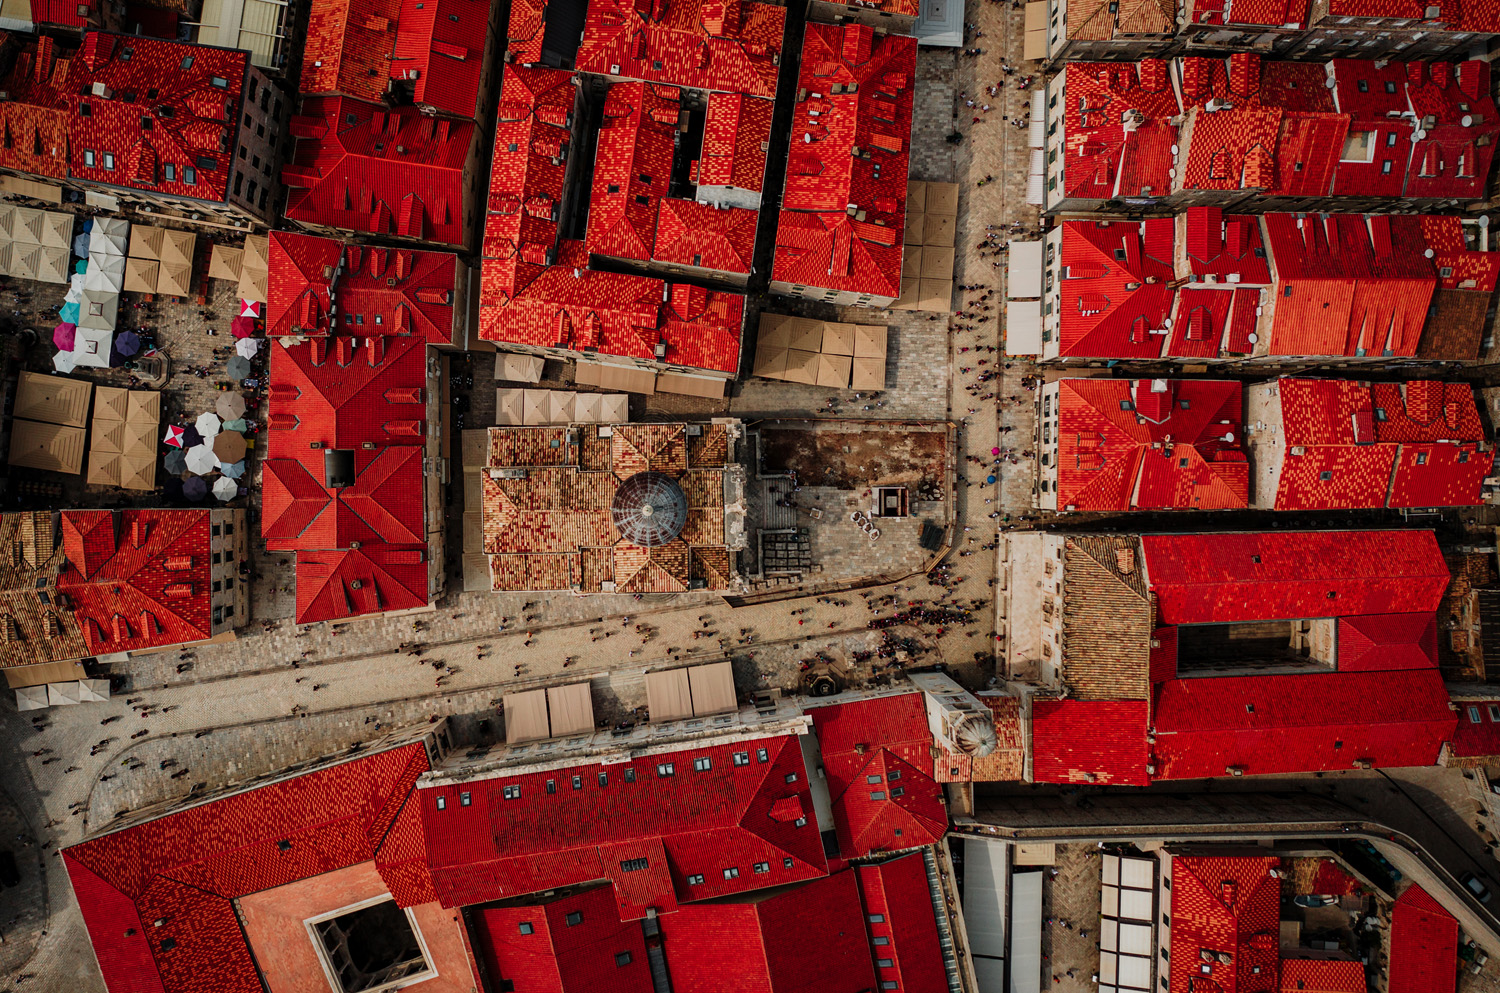 Red roofs in Dubrovnik